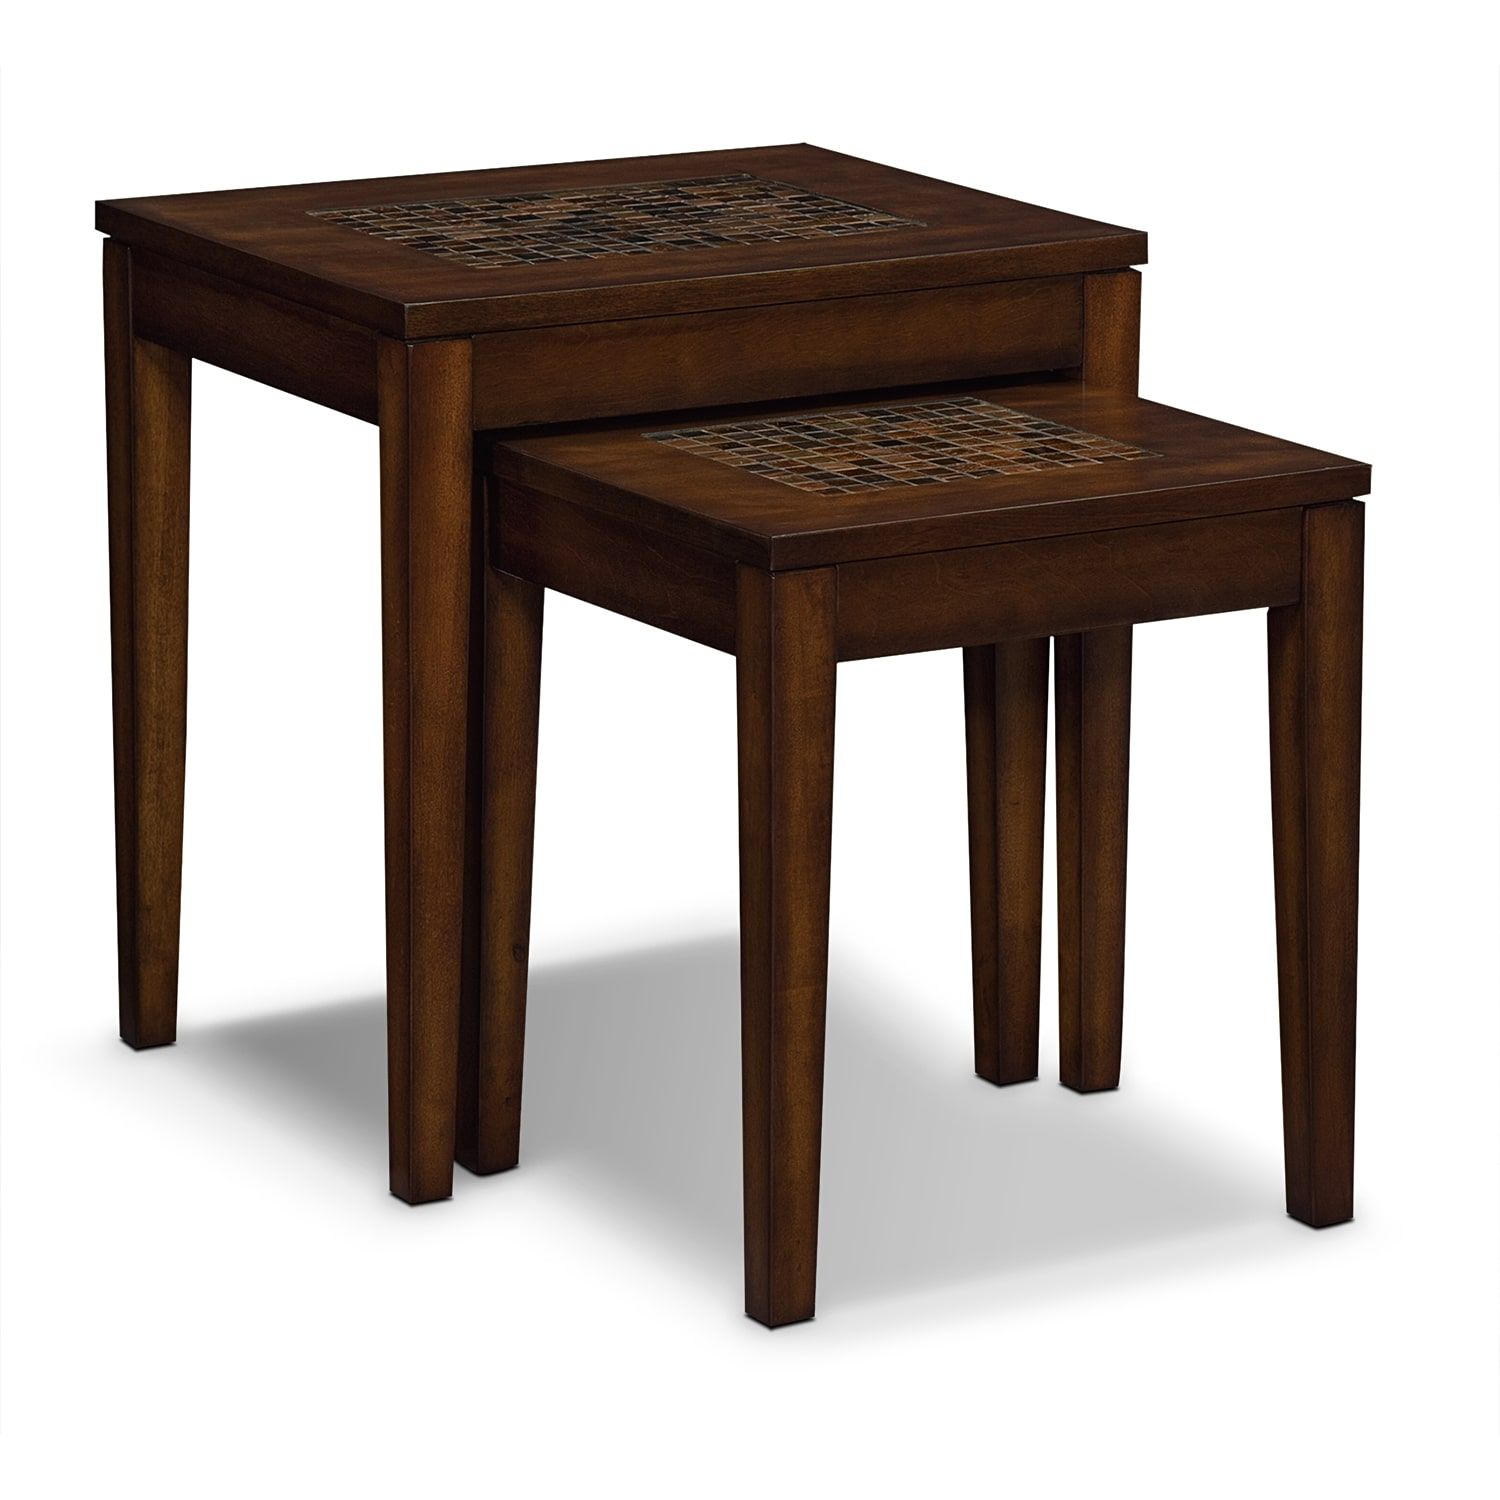 Carson nesting tables value city furniture for Occasional tables